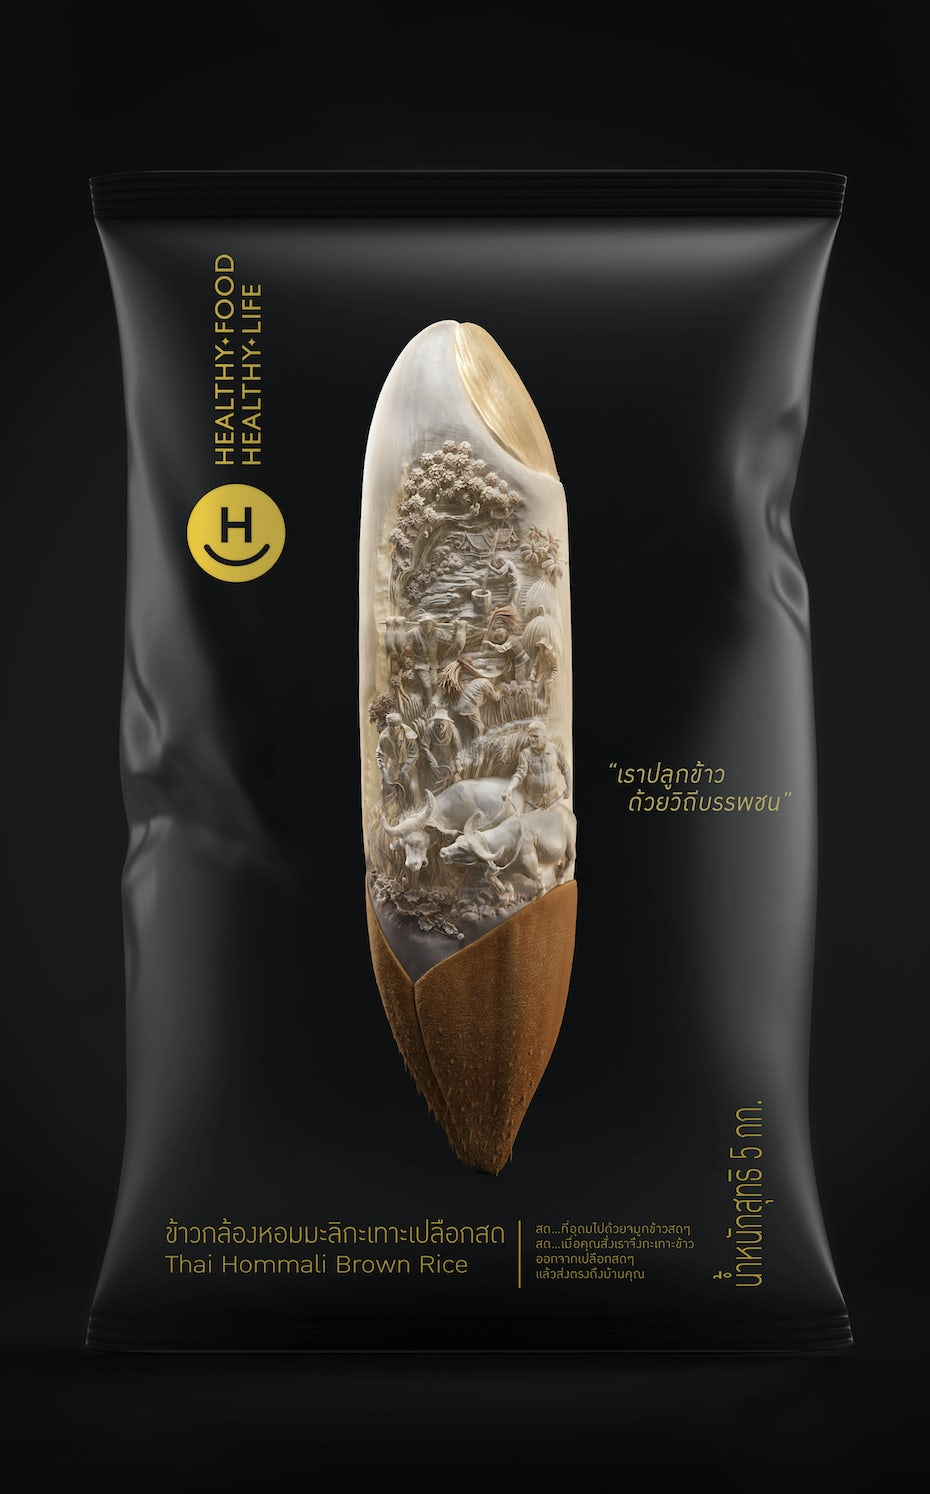 Packaging design trends 2020 example: Metamorphoses Elegant Thai rice packaging